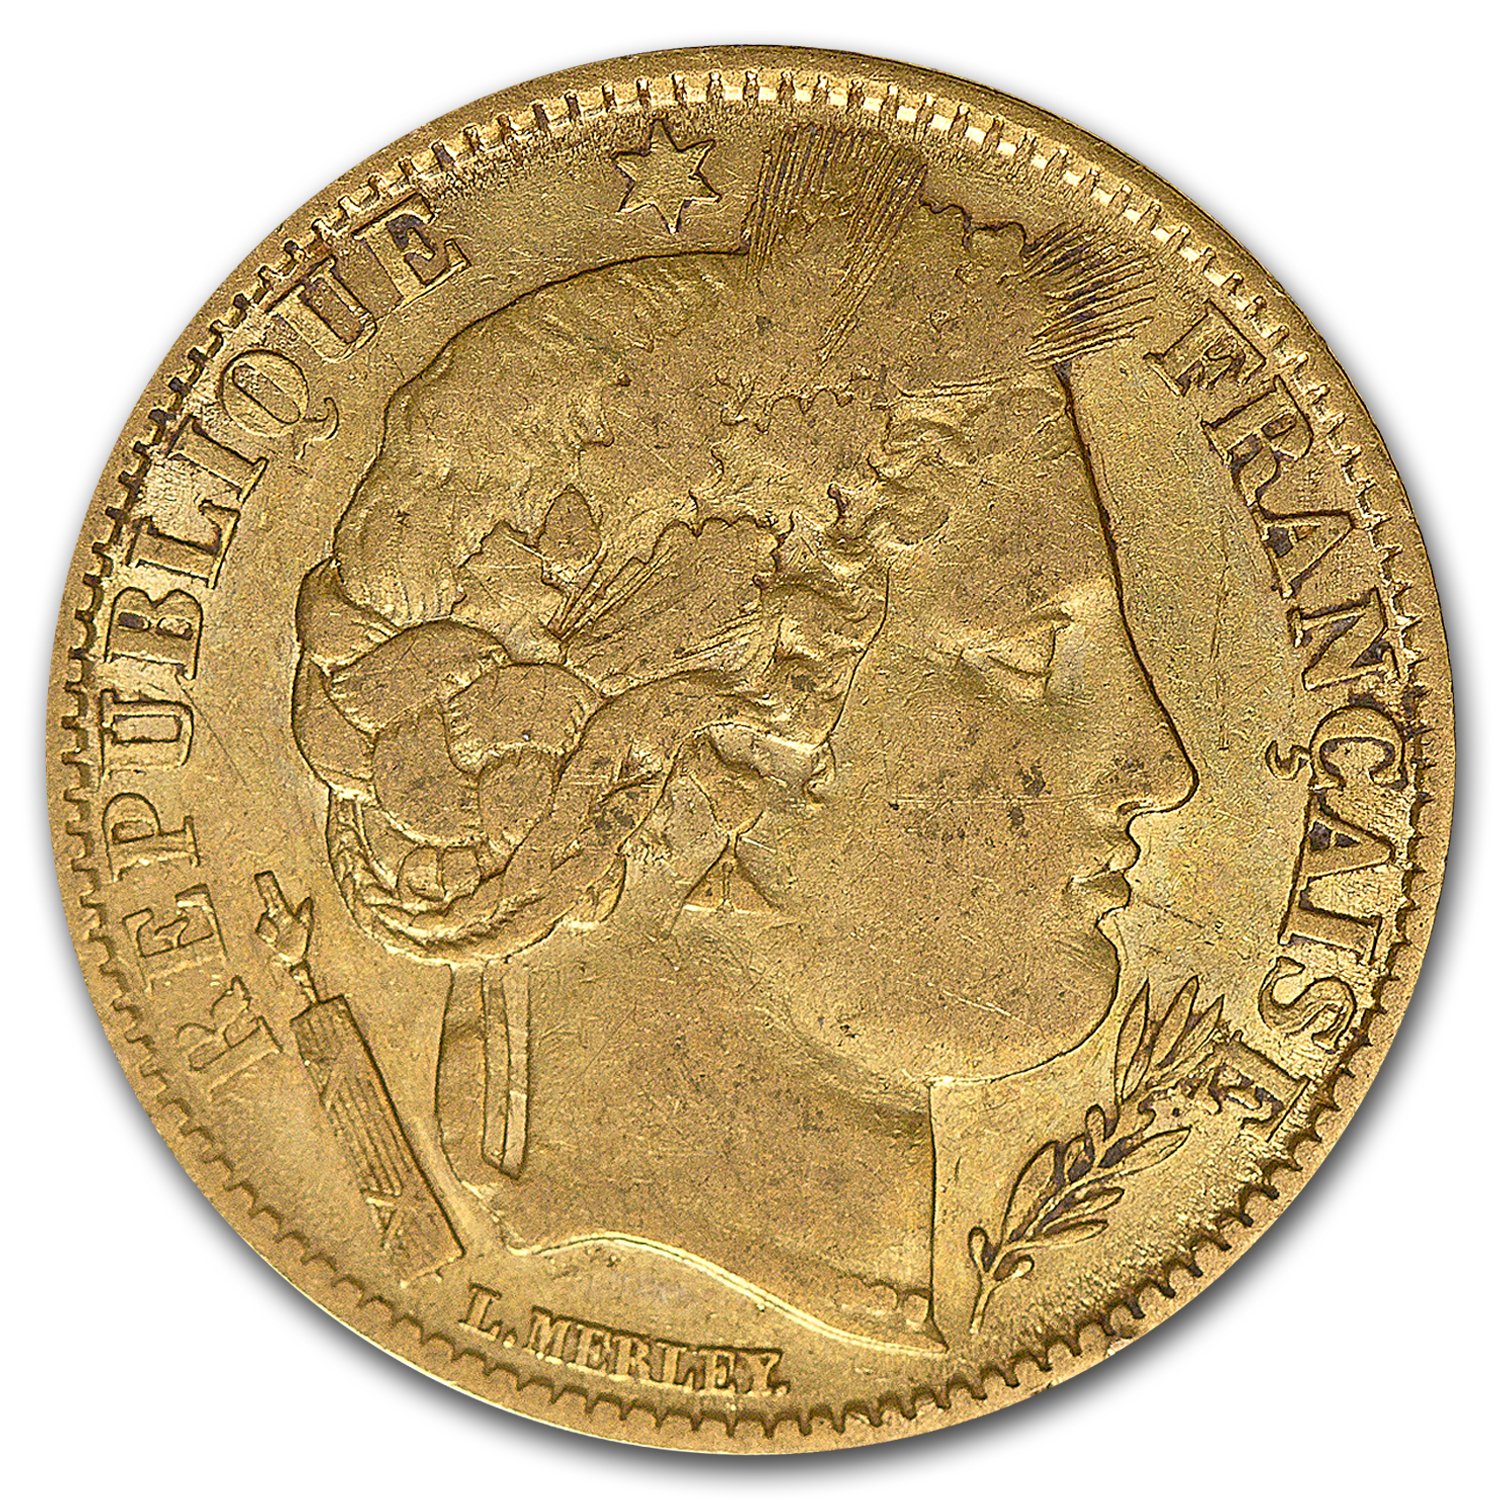 1850-1851 France Gold 10 Francs Ceres Head Avg Circ